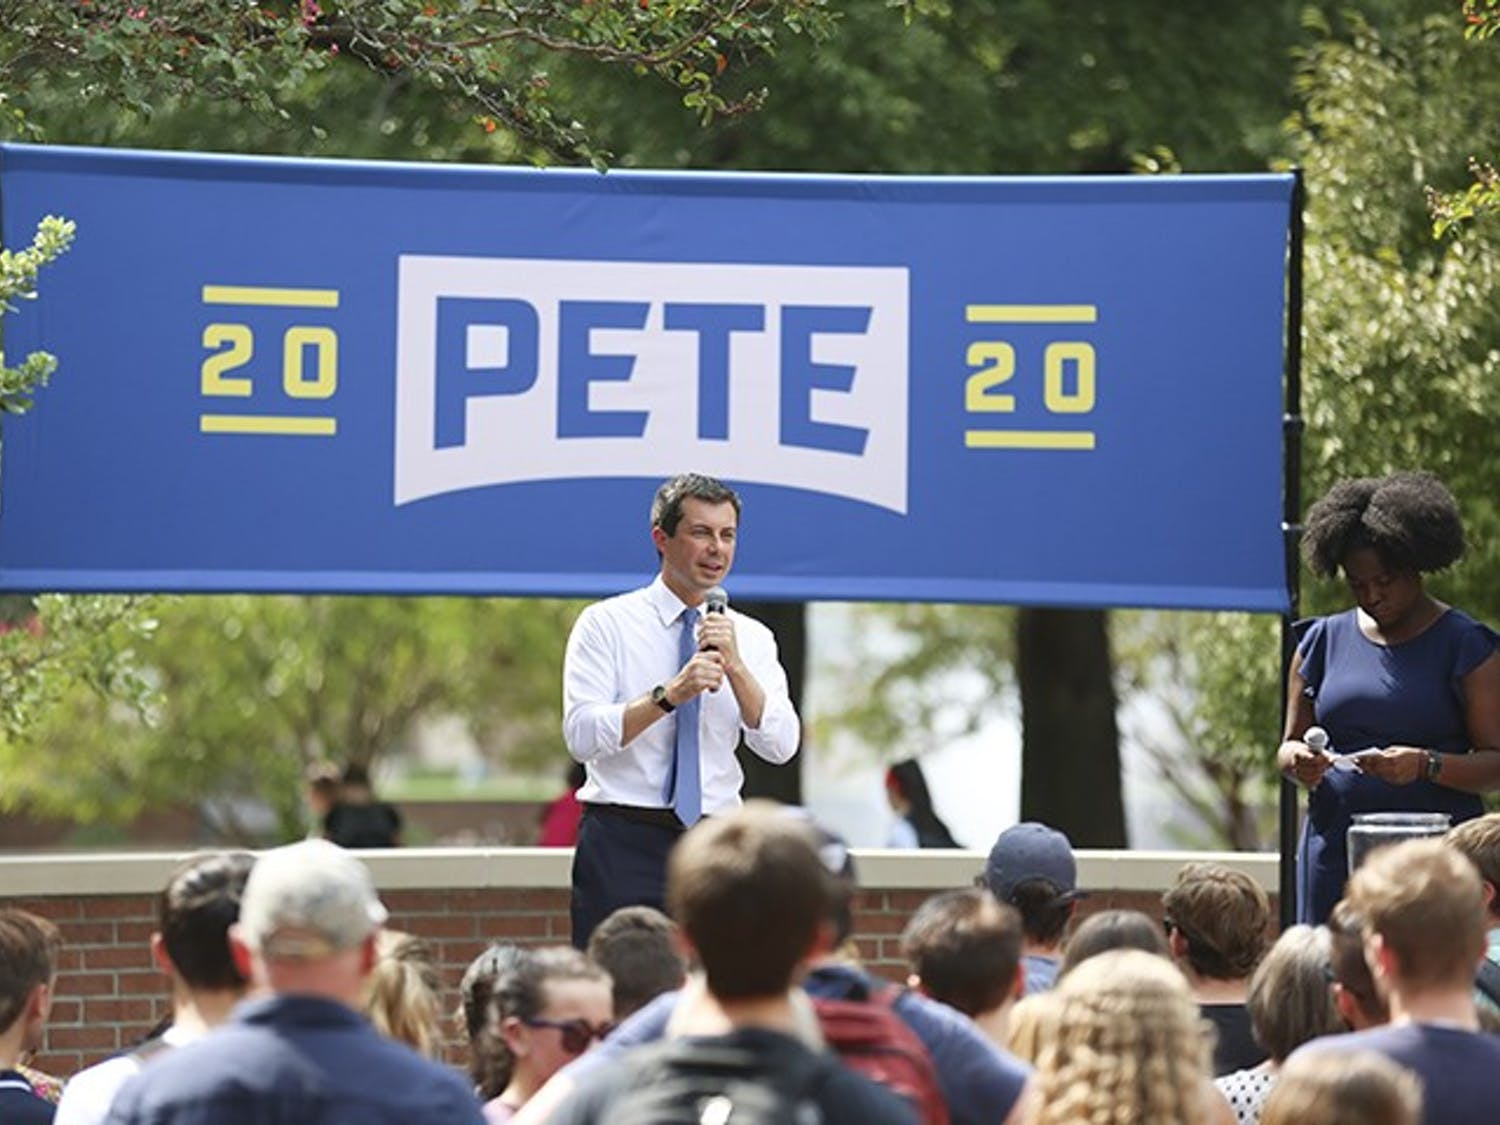 Democratic presidential candidate Pete Buttegieg speaks to students and supporters at Russell House on Tuesday afternoon.